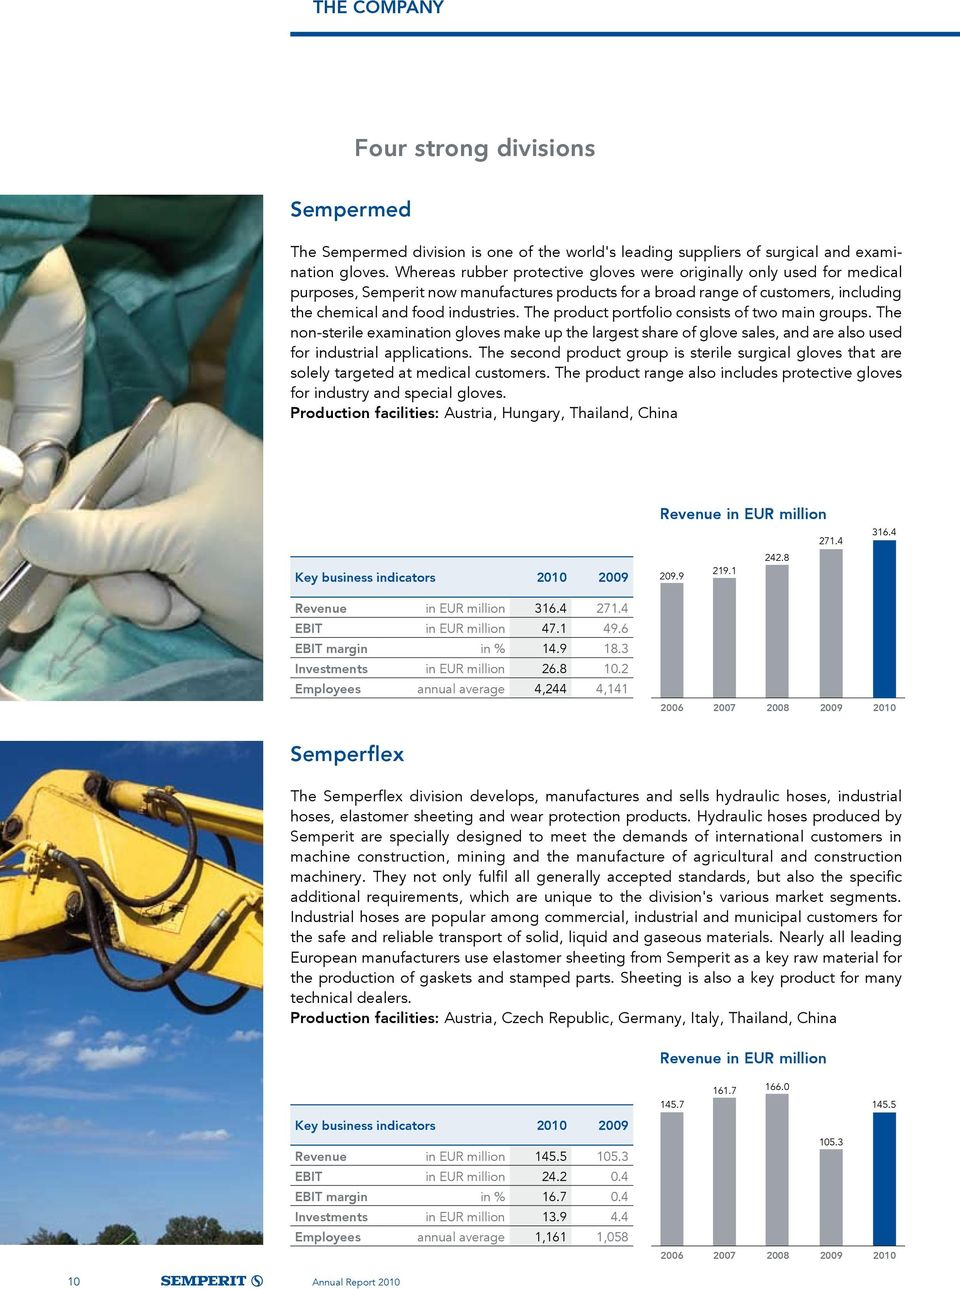 The product portfolio consists of two main groups. The non-sterile examination gloves make up the largest share of glove sales, and are also used for industrial applications.